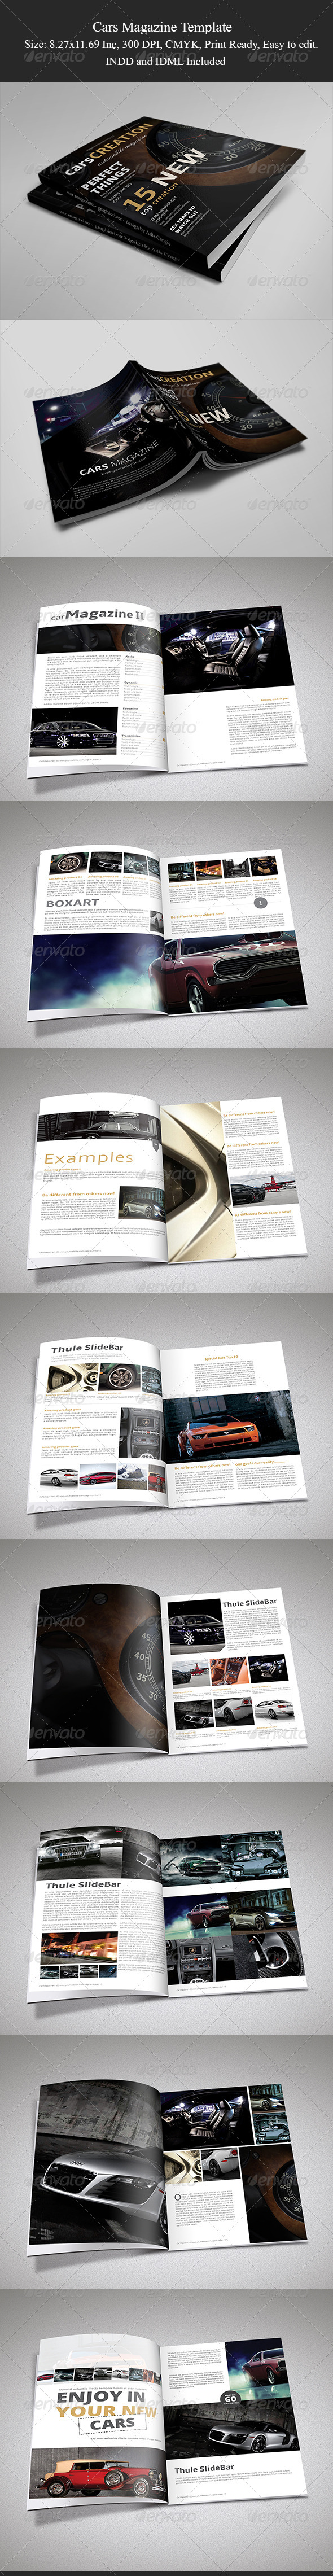 Cars Magazine Template II - Magazines Print Templates